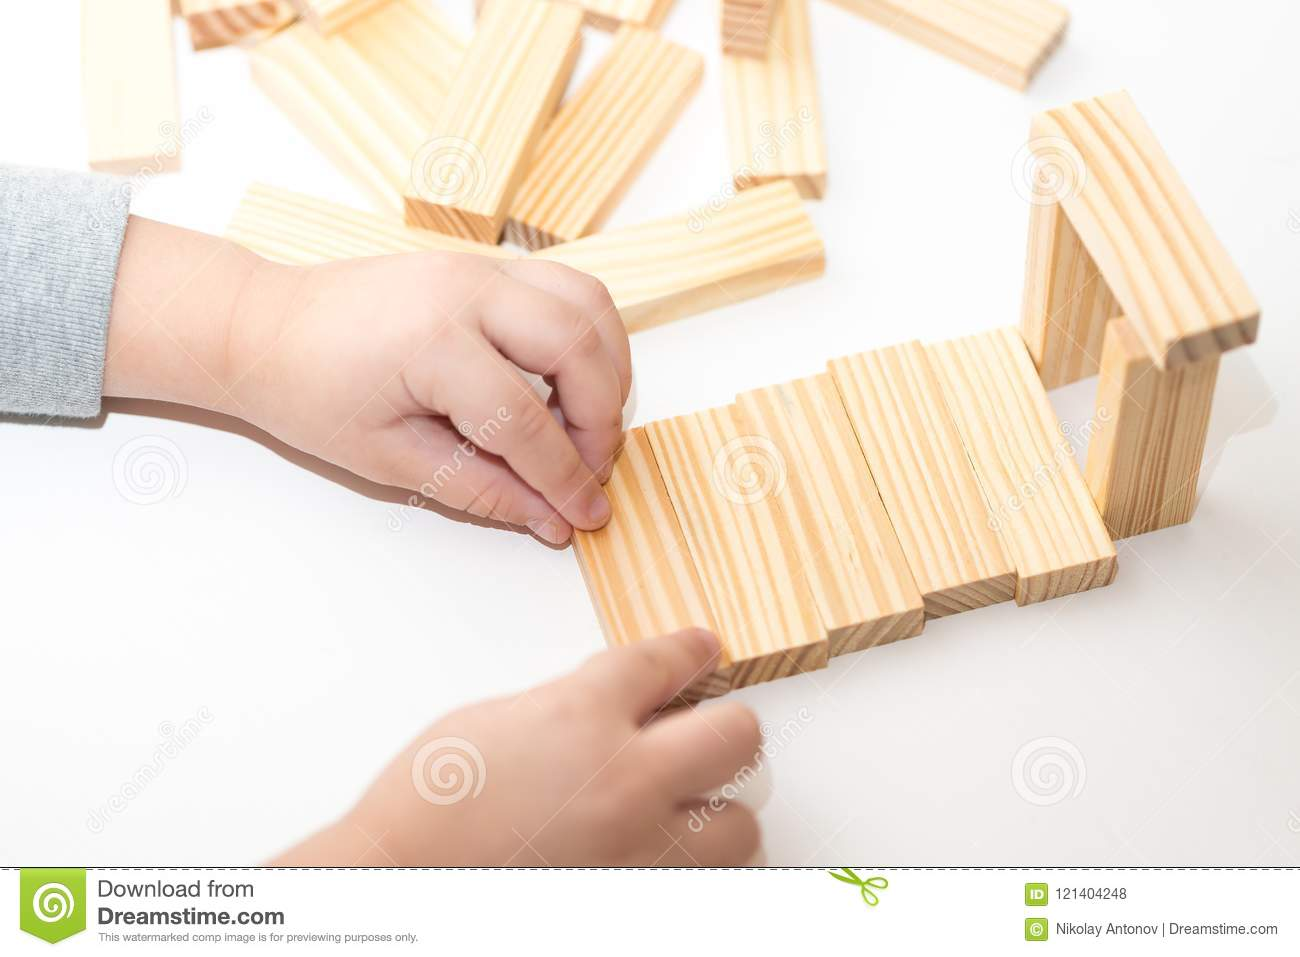 Closeup of kids hands playing with wooden blocks and building house. Education concept.